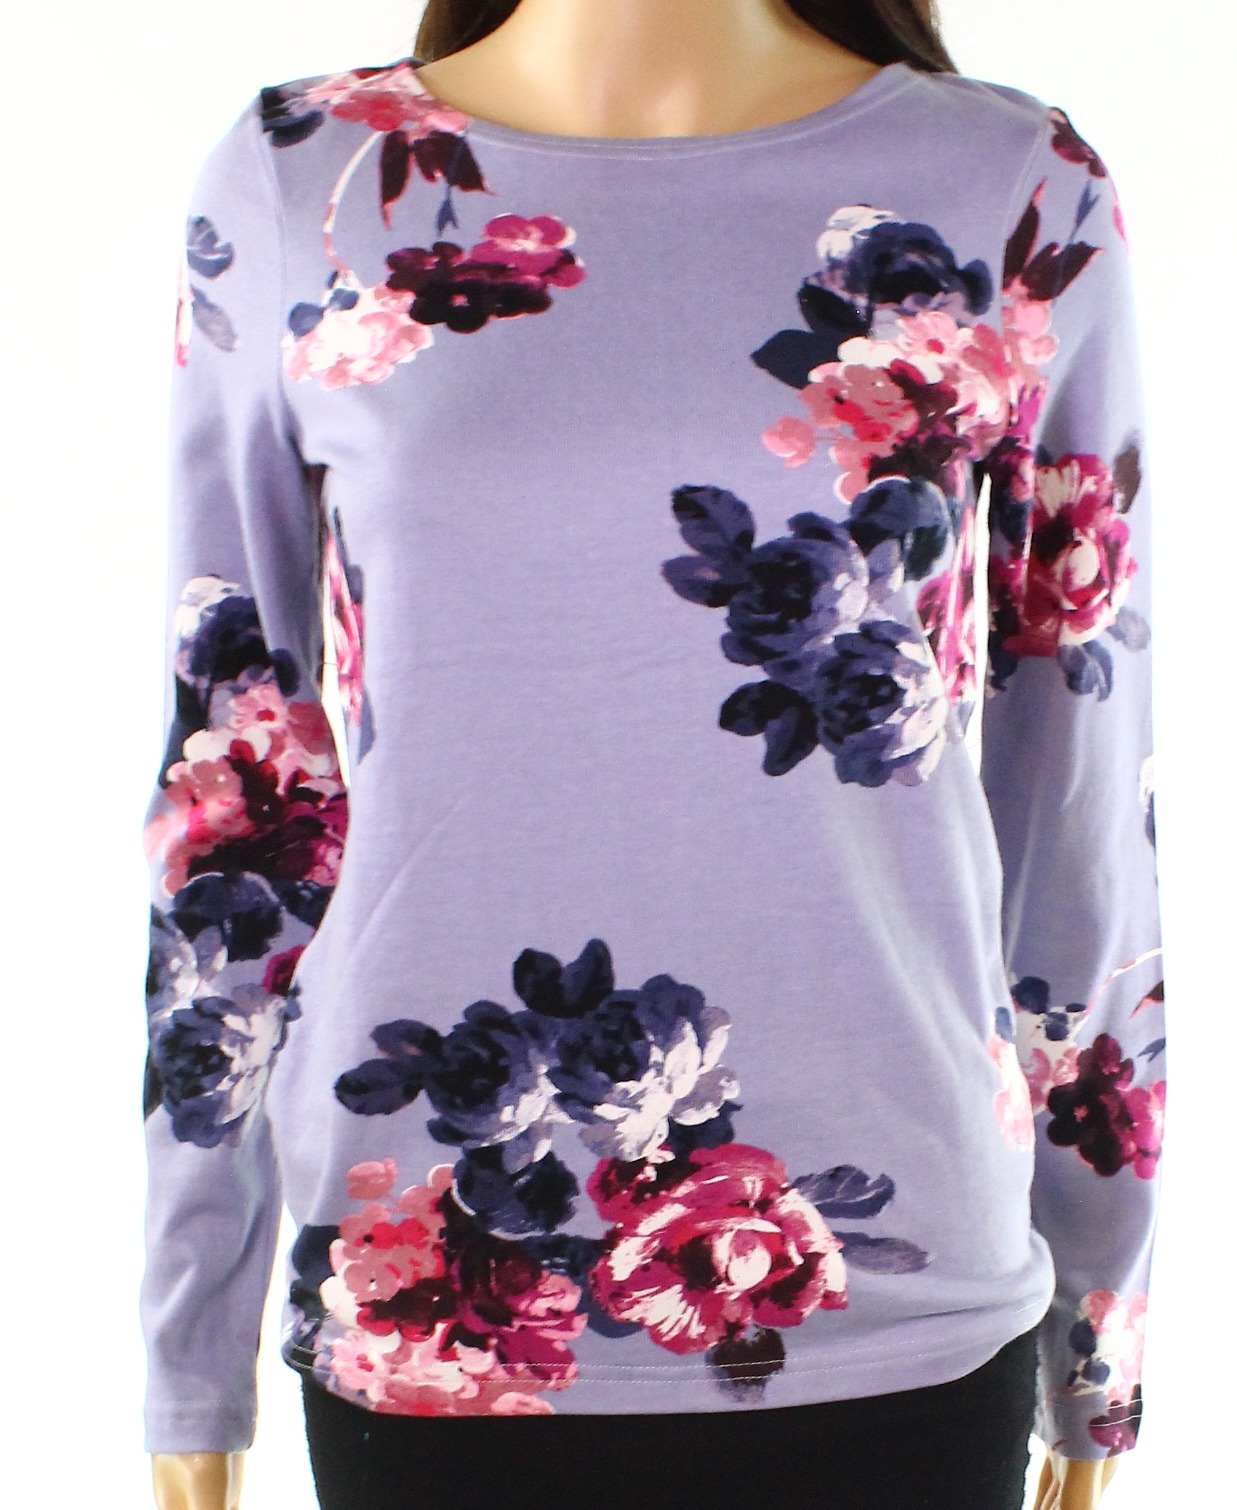 New-Joules-Women-039-s-Blue-Size-6-Floral-Print-Boat-Neck-Stretch-Knit-Top-48-795